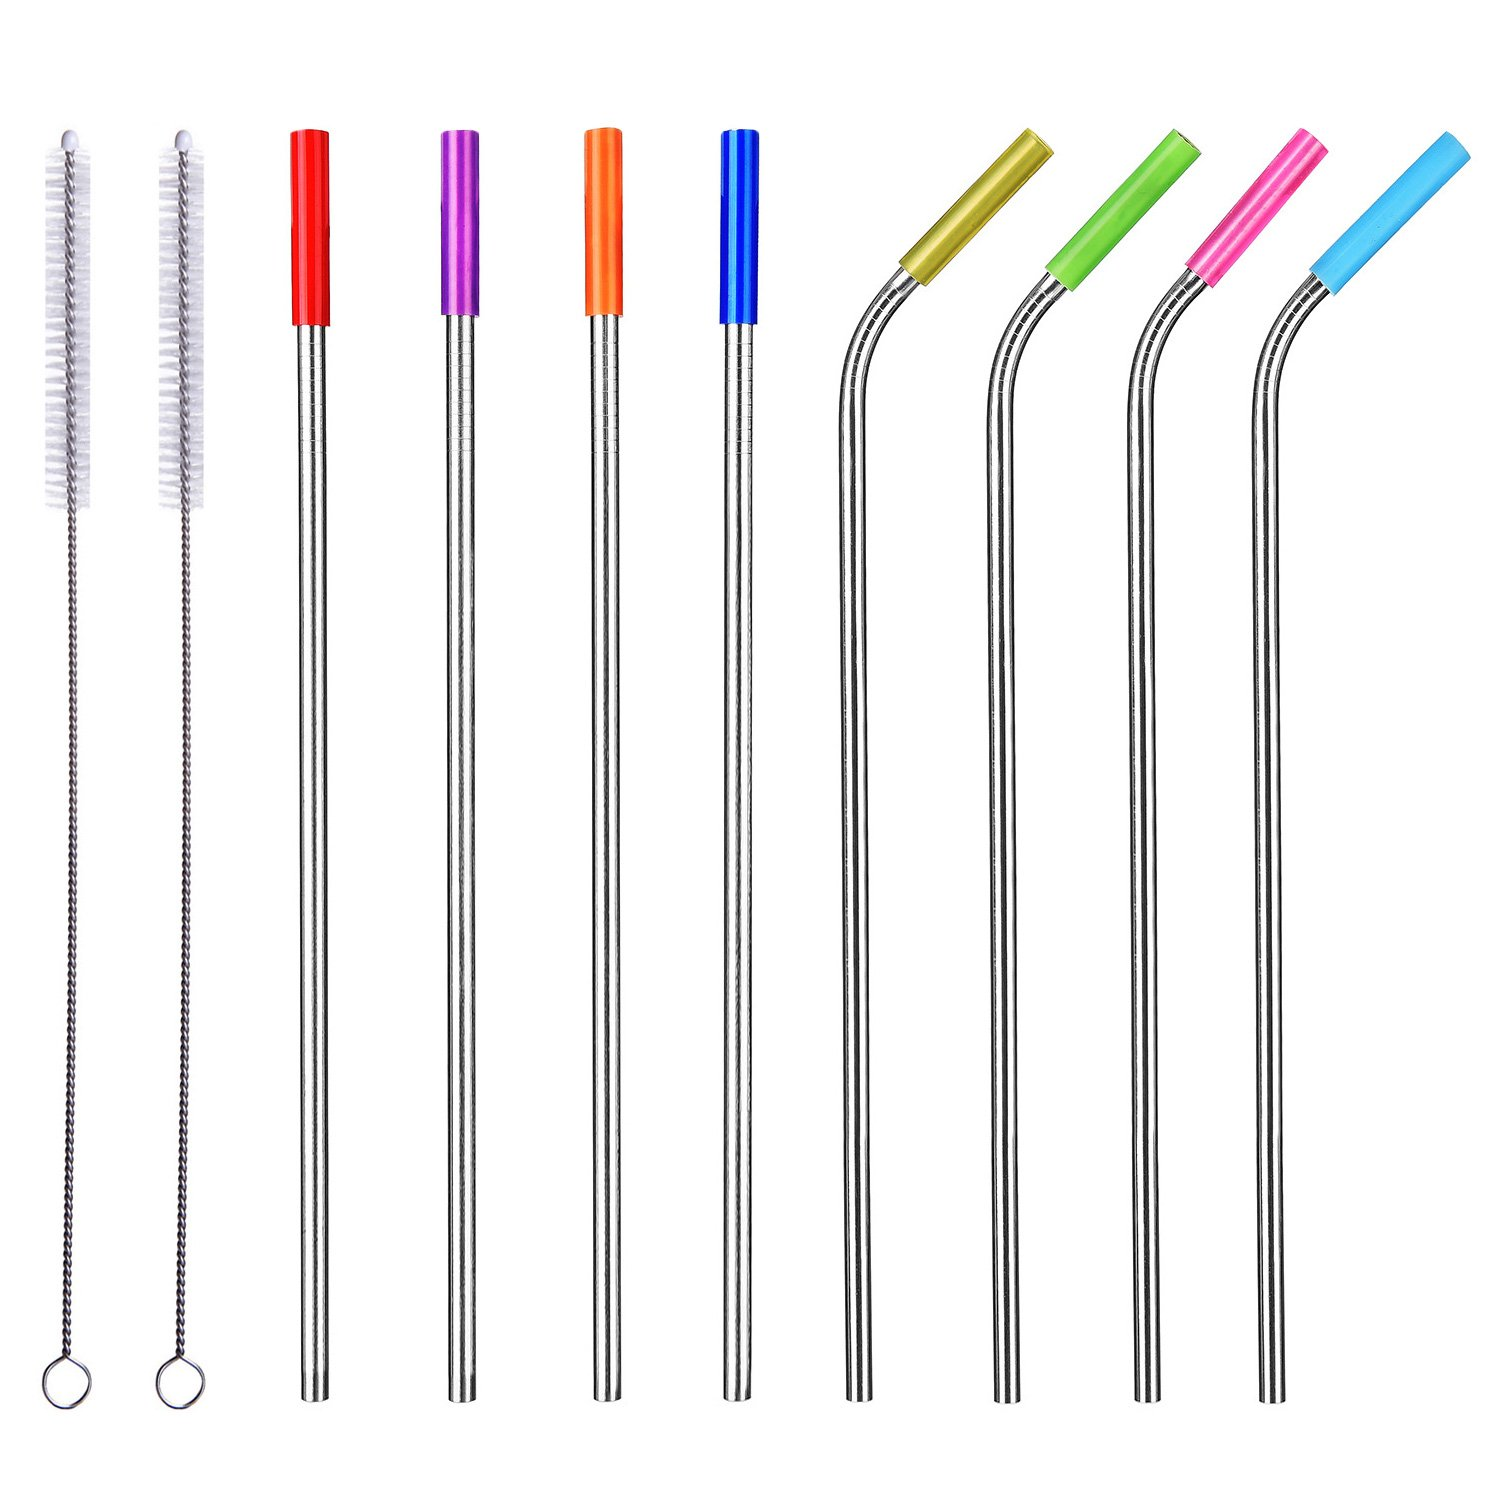 "ALINK - ALINK 10.5"" Long Stainless Steel Straws, Set of 8 Reusable Replacement Metal Straws with Silicone Tips and Cleaning Brush"